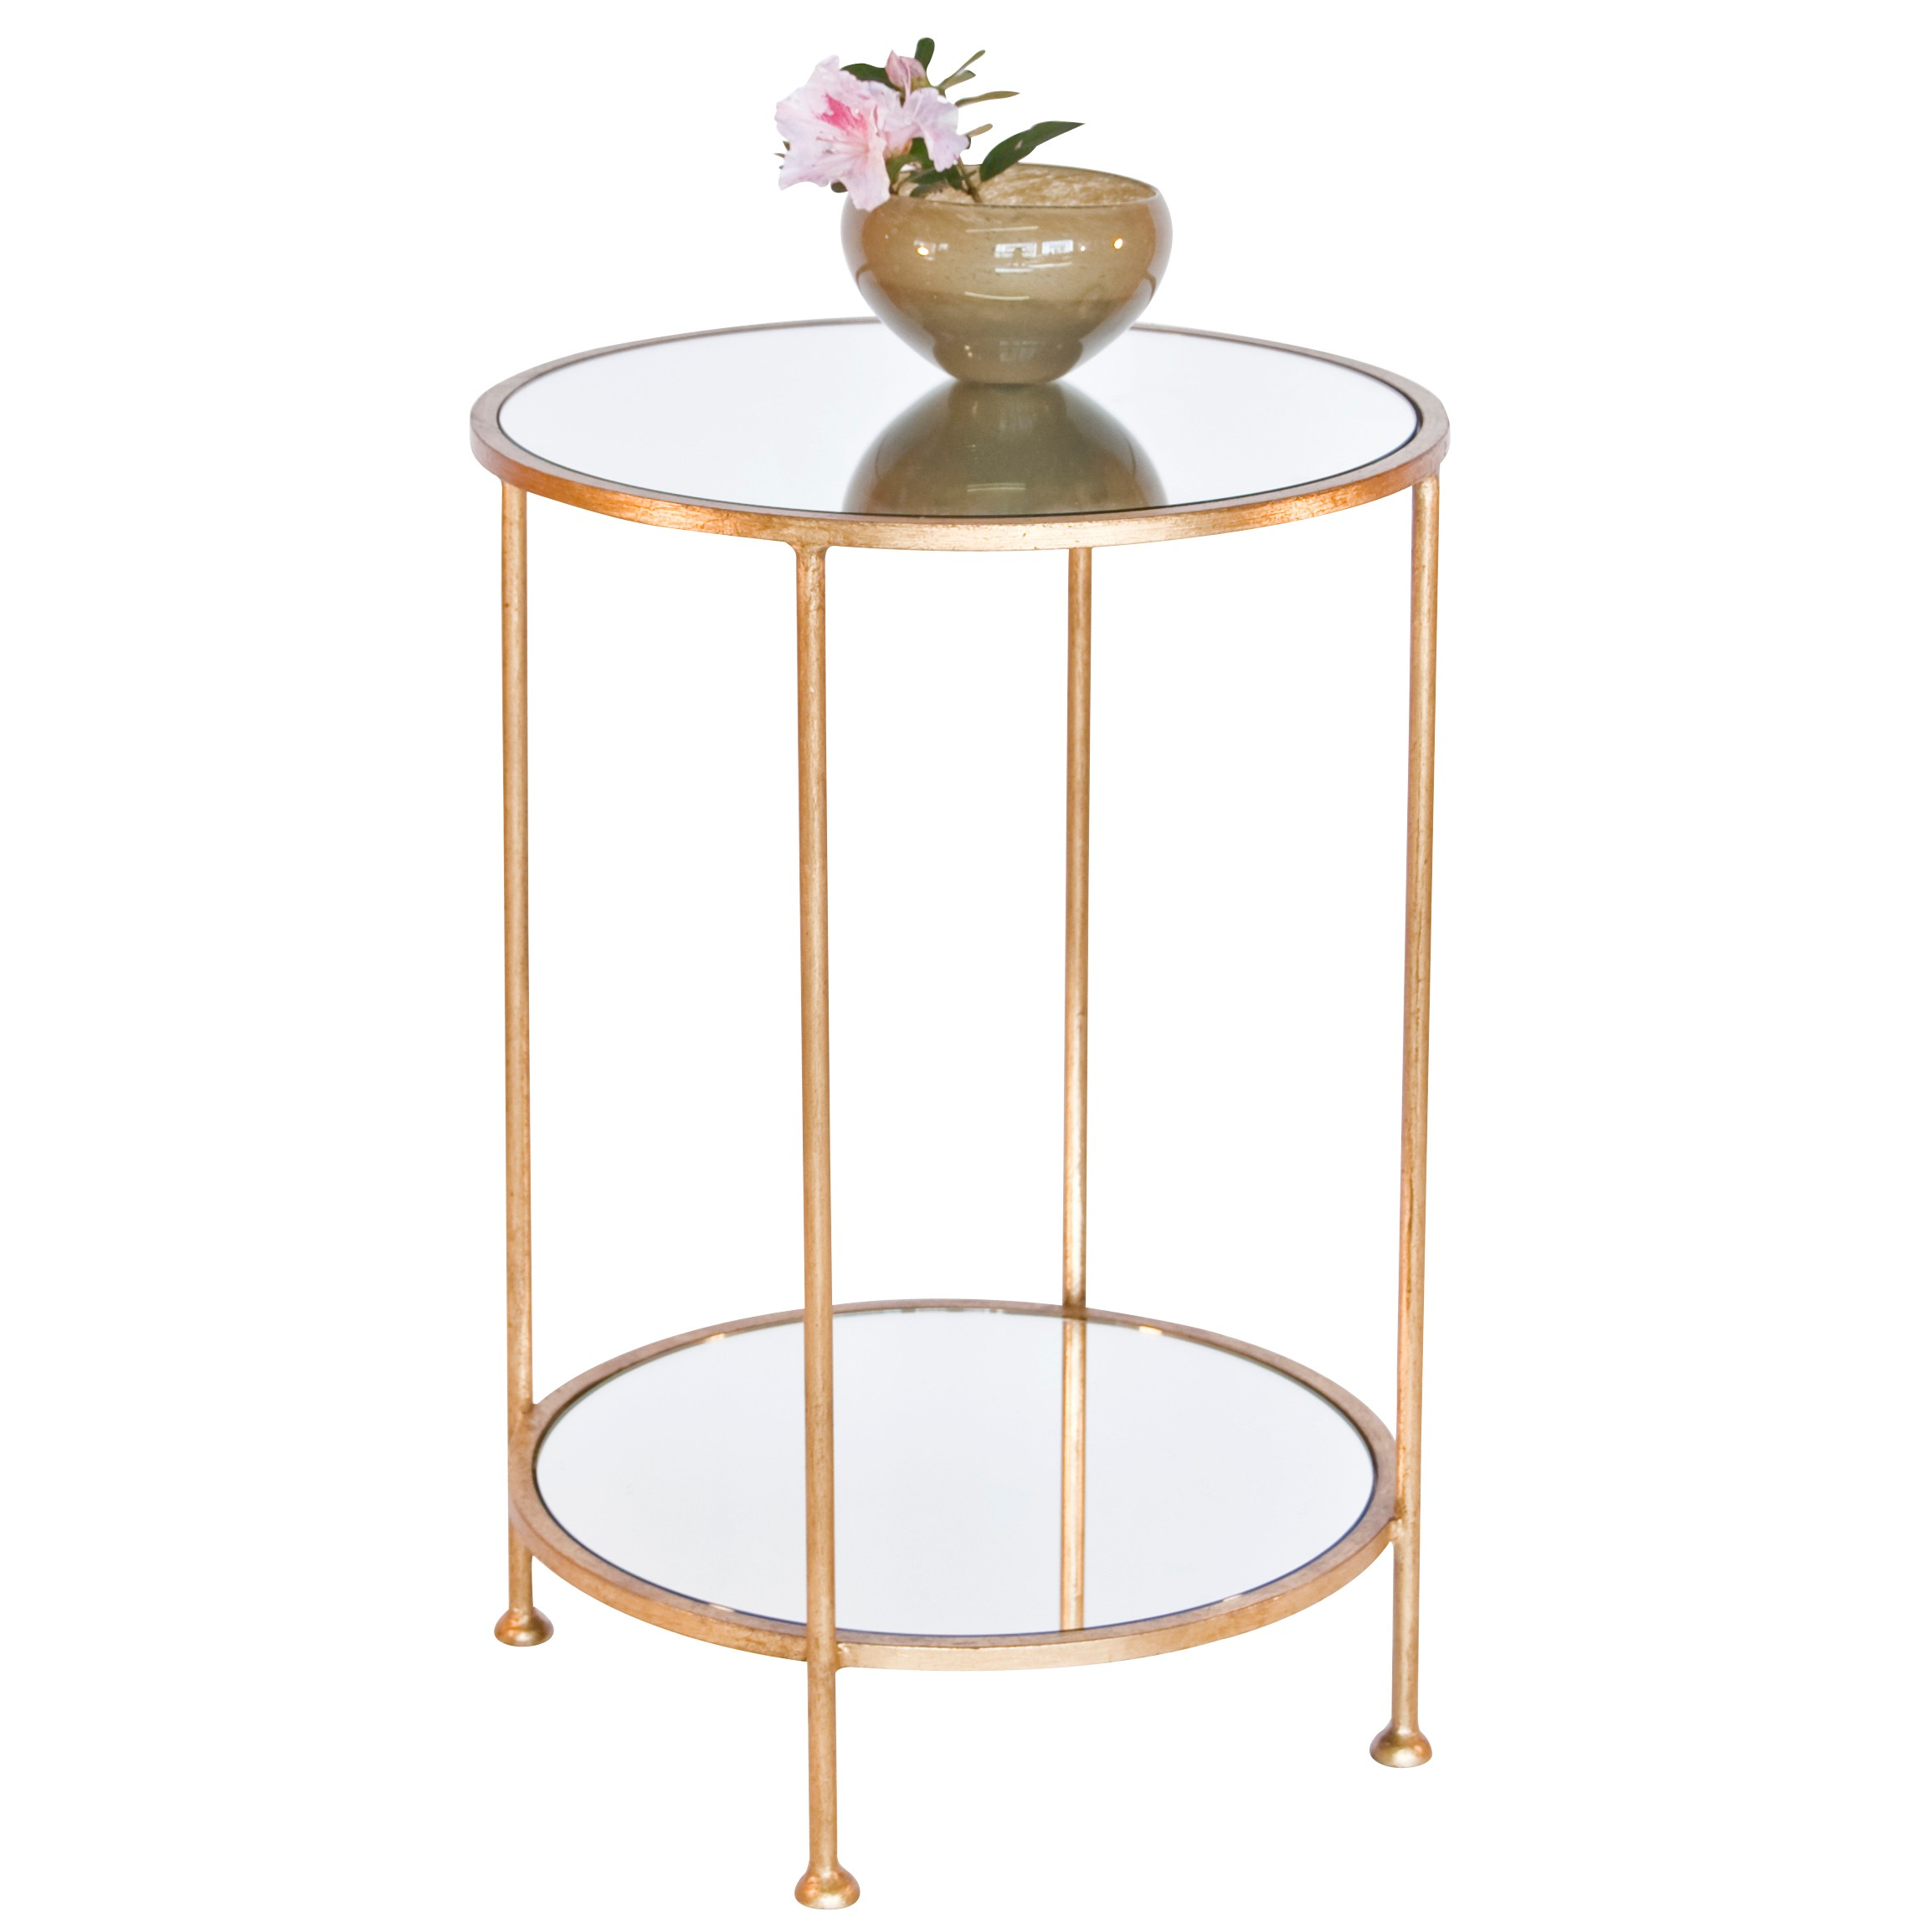 furniture elegant mirrored accent table for home ideas worlds away chico small tier gold leaf round occasional tables drawer end with storage drawers pedestal coffee bar turquoise